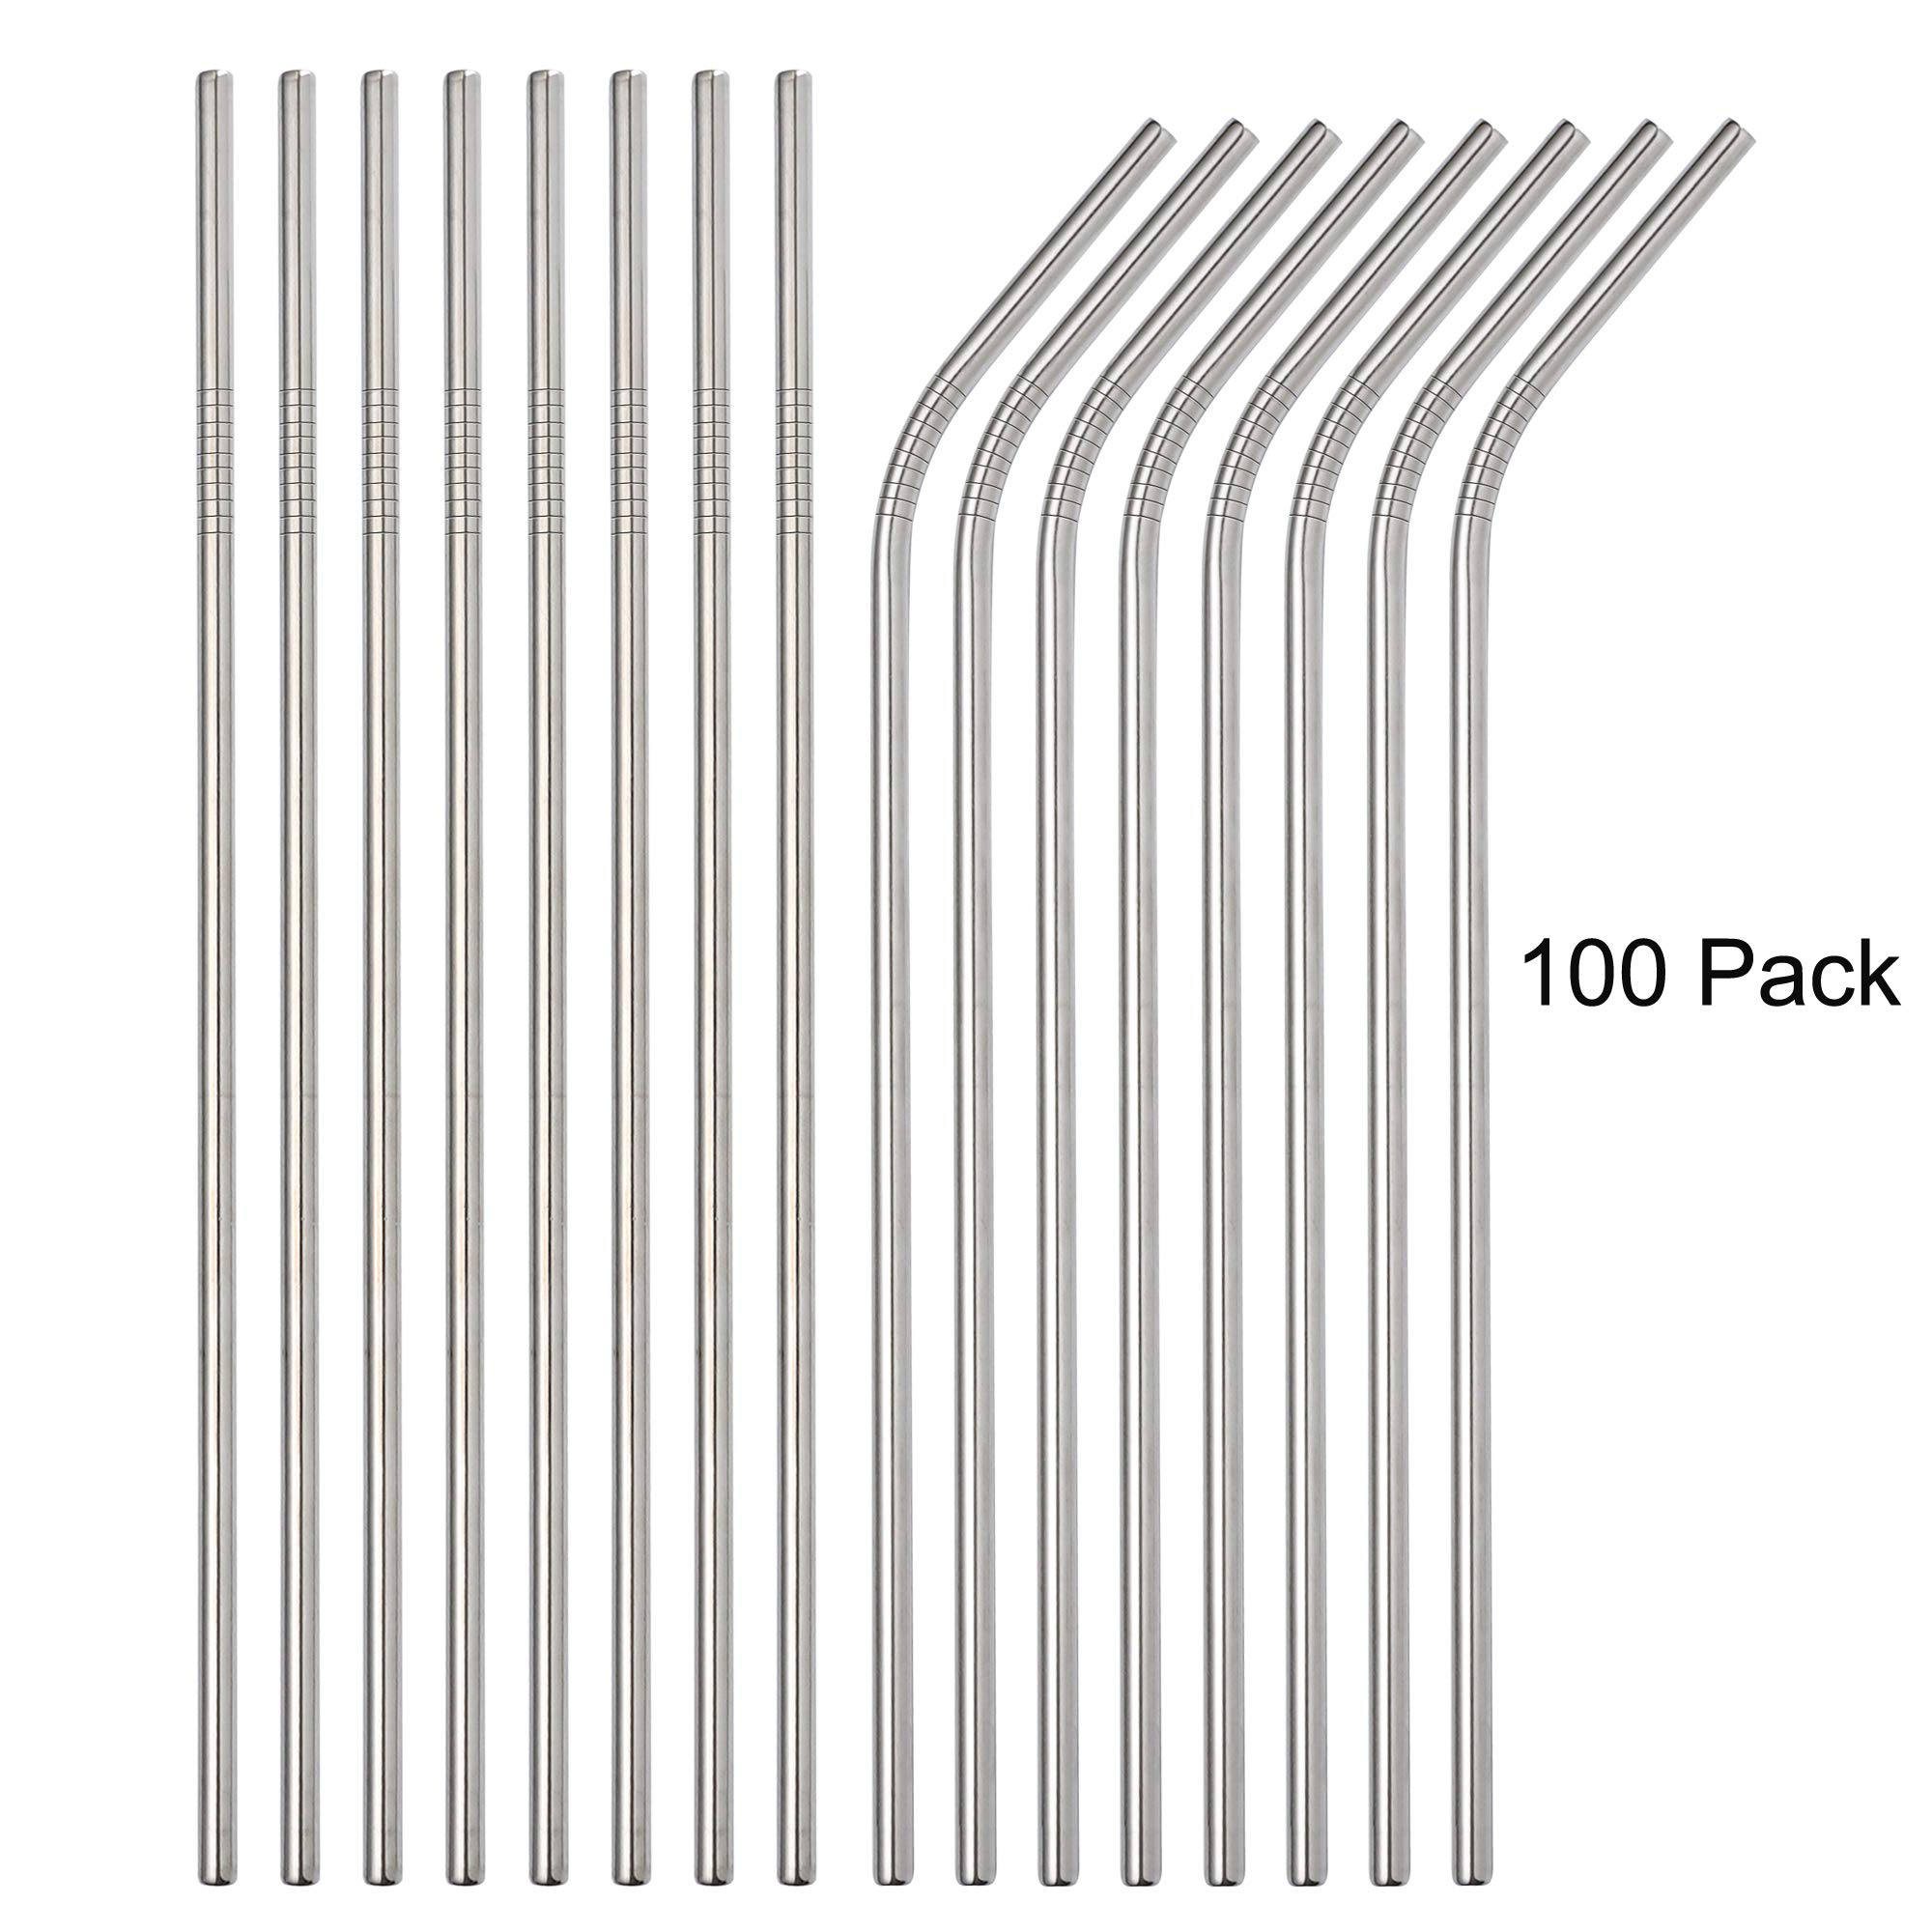 Brightbuy Stainless Steel Straws Set of 100 Piece, 8.5'' 10.5''Metal Drinking Straws for 20oz Tumblers Yeti 6mm Diameter (50 Straight + 50 Bent) (100pc 215mm) by Brightbuy